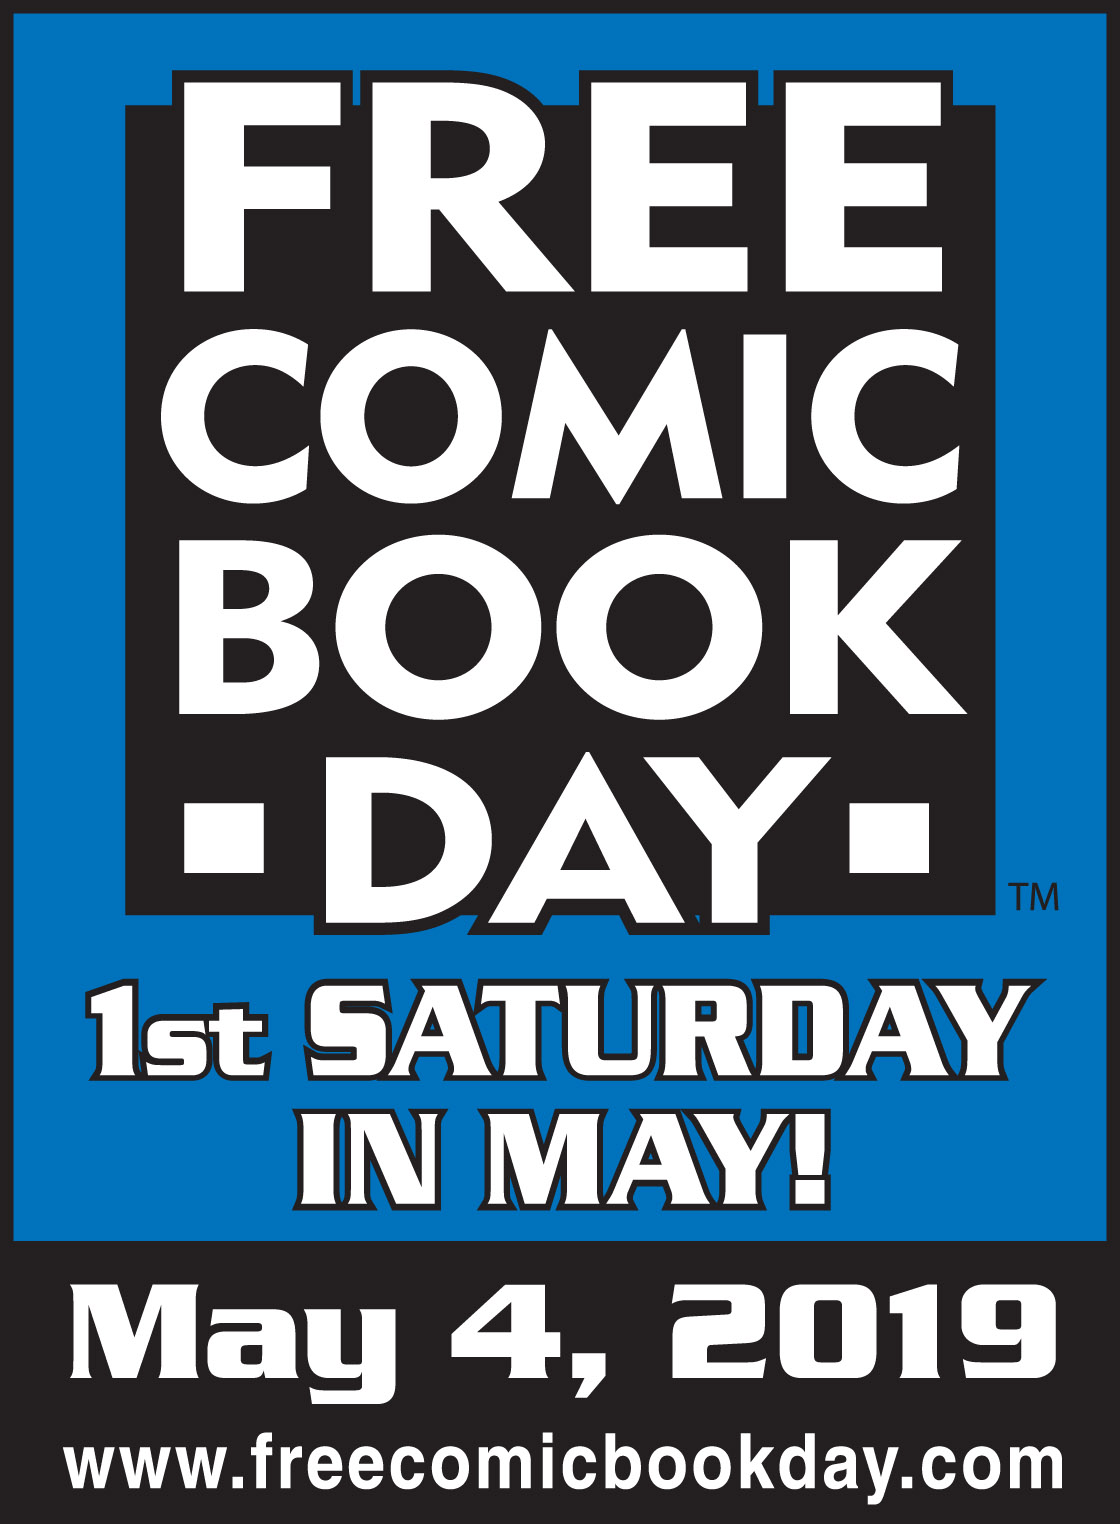 Free Comic Book Day, FCBD, logo, May 4